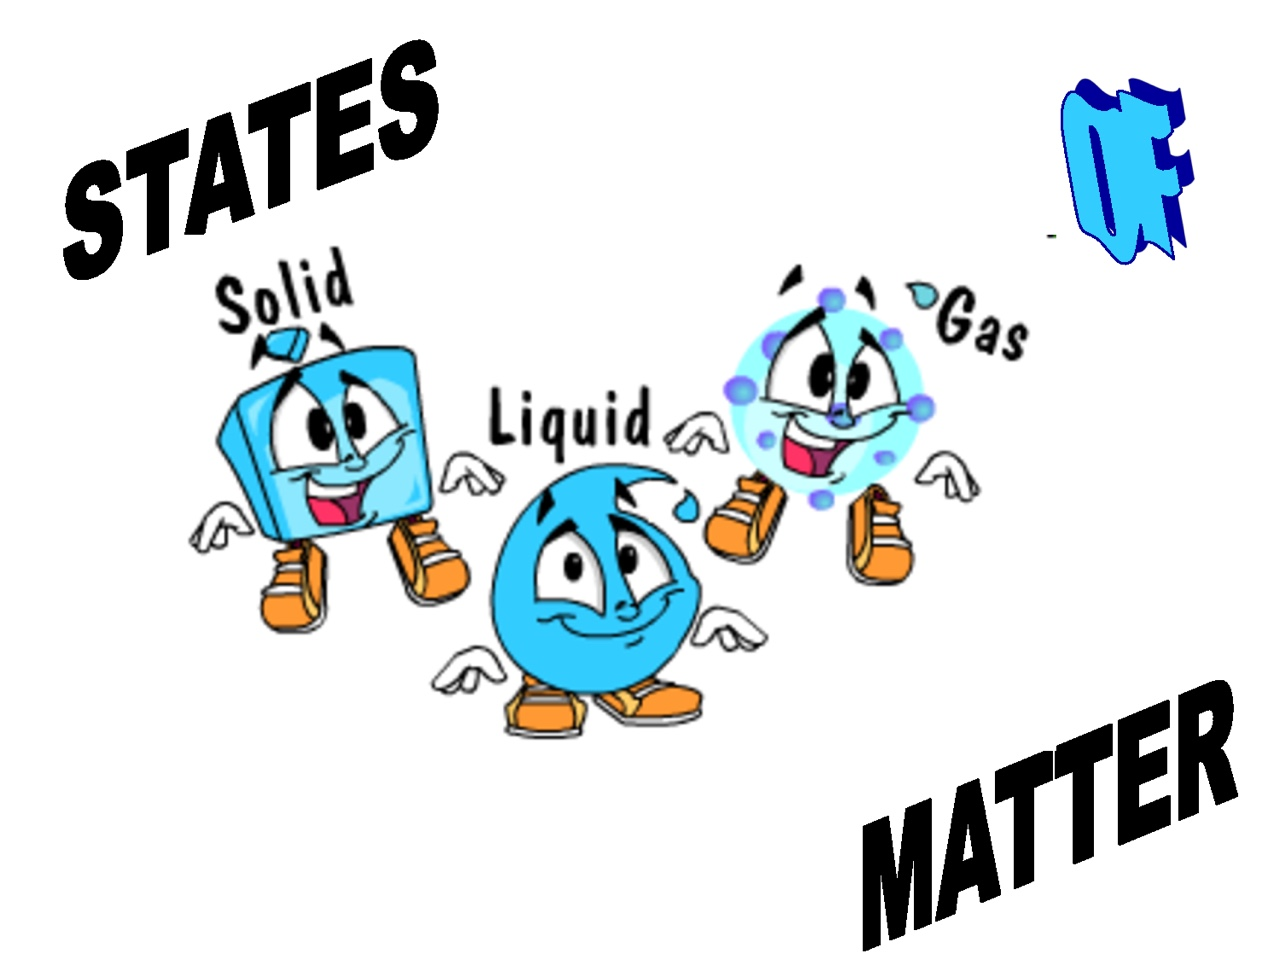 matter vocabulary by spencer lawrence bruening thinglink Pictures of Matter Solids Liquids and Gases Of Clip Art Matter Examplephases